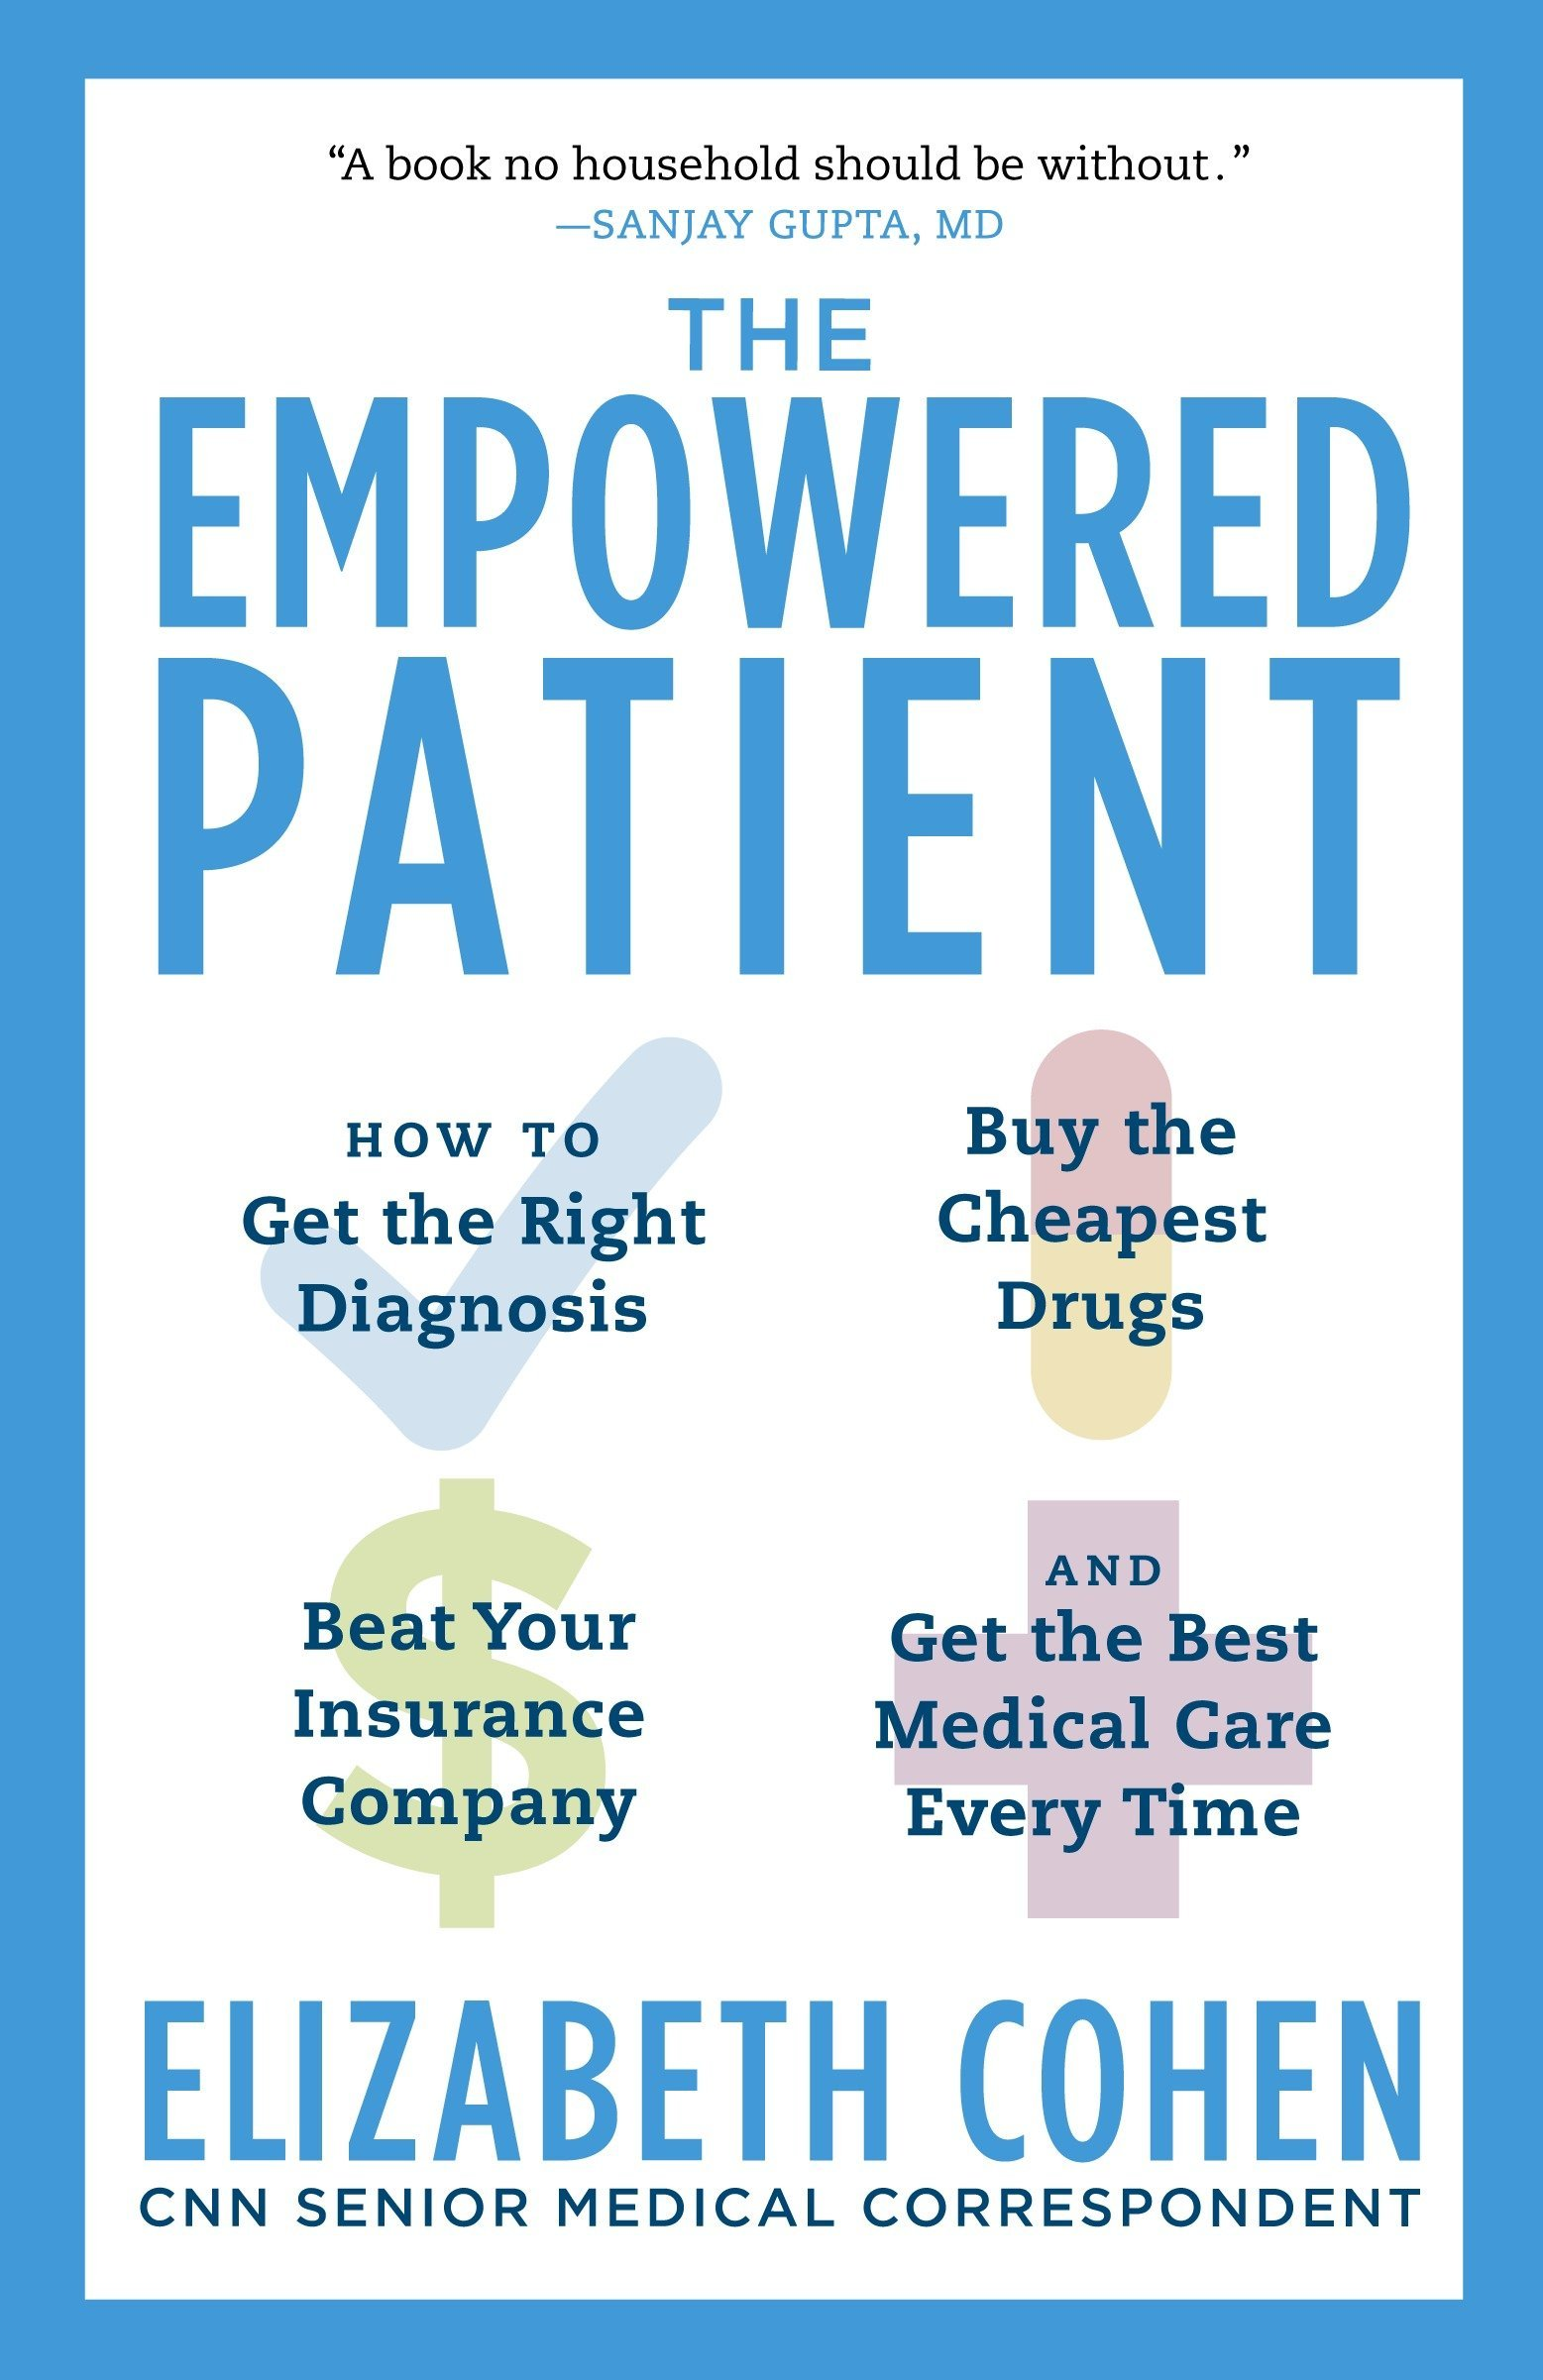 The Empowered Patient: How to Get the Right Diagnosis, Buy the Cheapest Drugs, Beat Your Insurance Company, and Get the Best Medical Care Every Time pdf